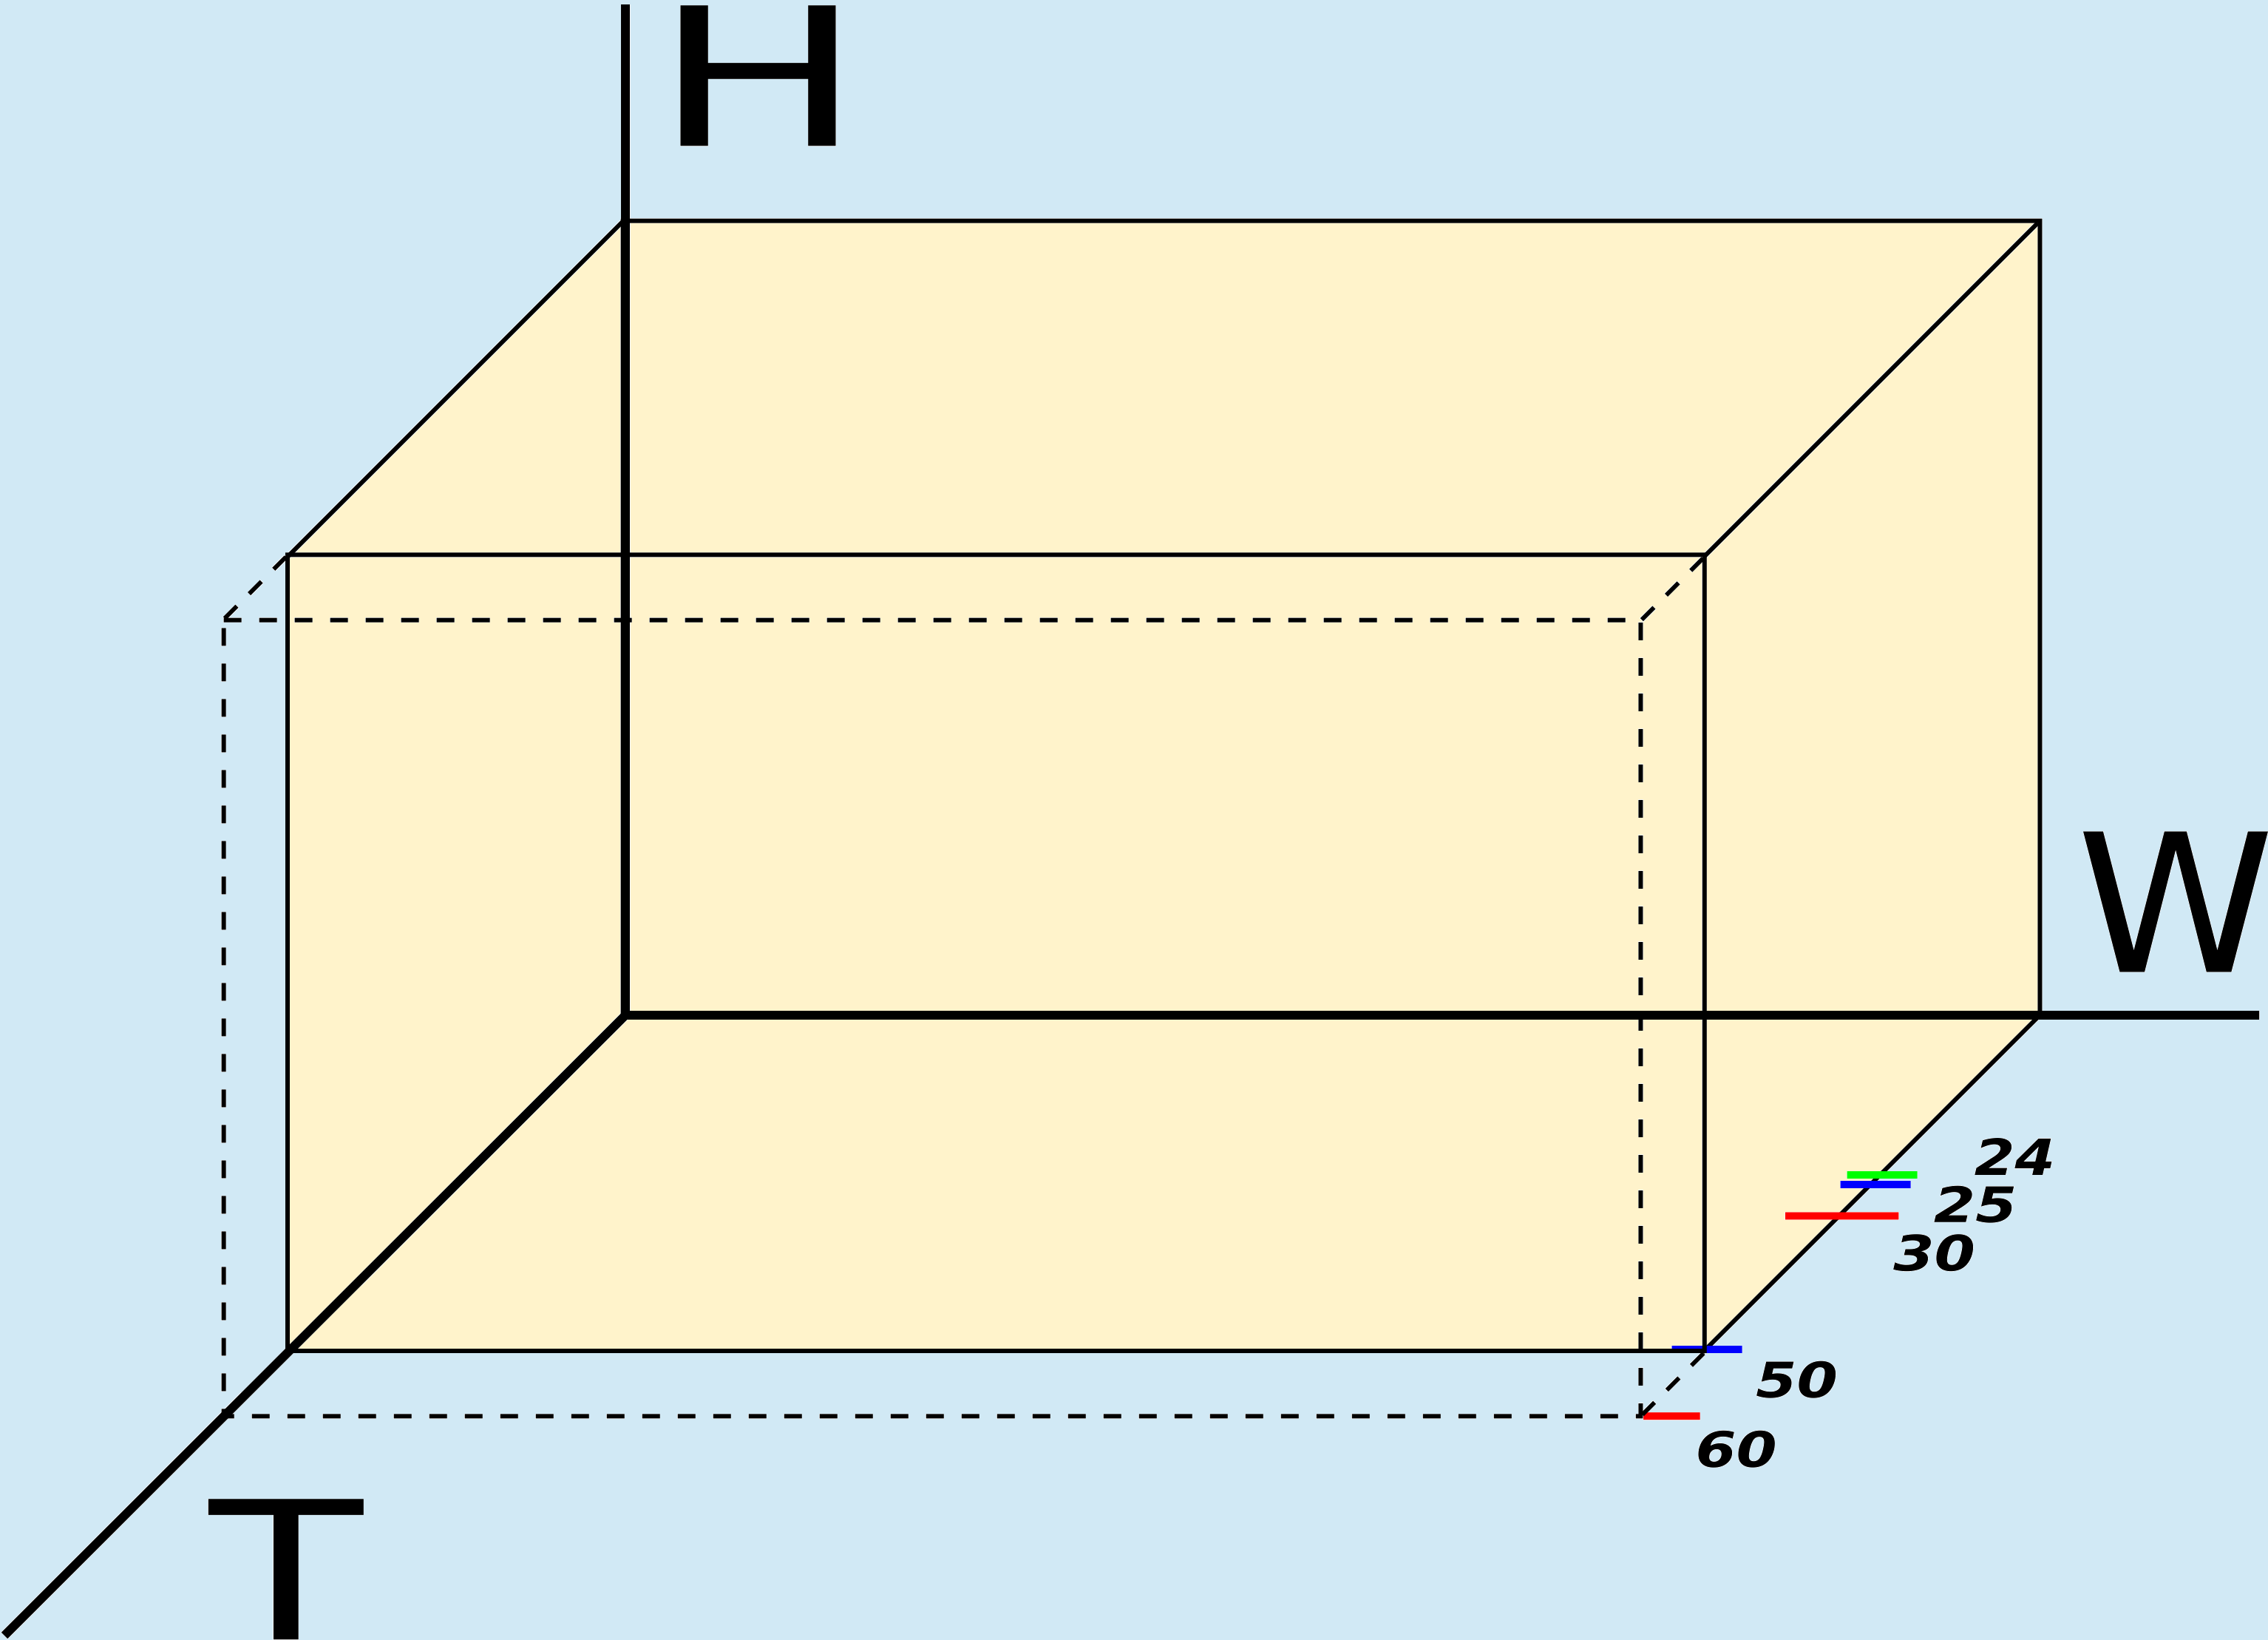 File:Television bandwidth 1080p50 diagram-cube 3-axis H-W-T (height-width